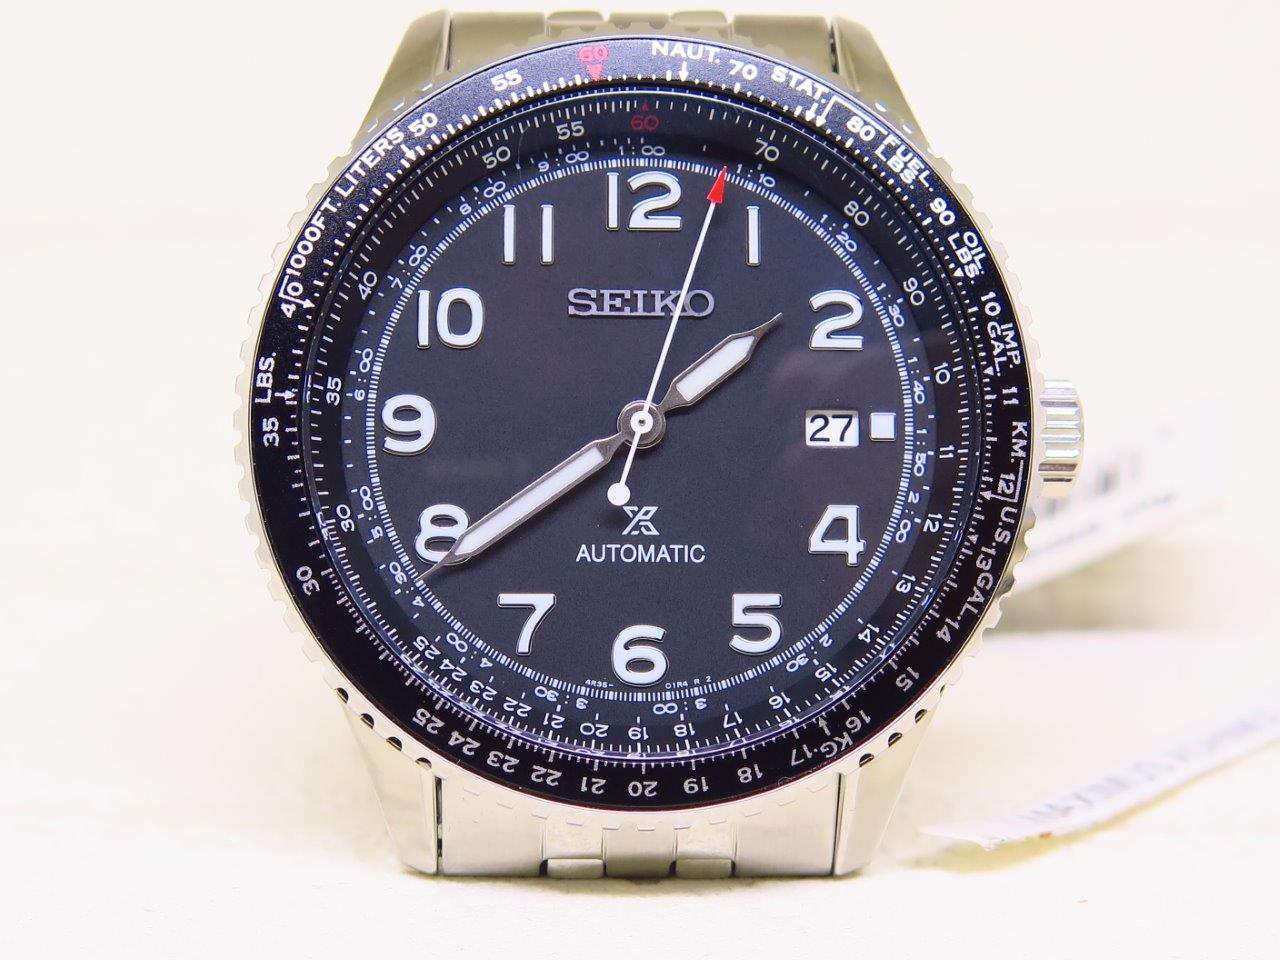 SEIKO PILOT MILITARY DIAL AVIATION BEZEL - SEIKO SRPB57K1 - AUTOMATIC 4R35B  Mine coins - make mone